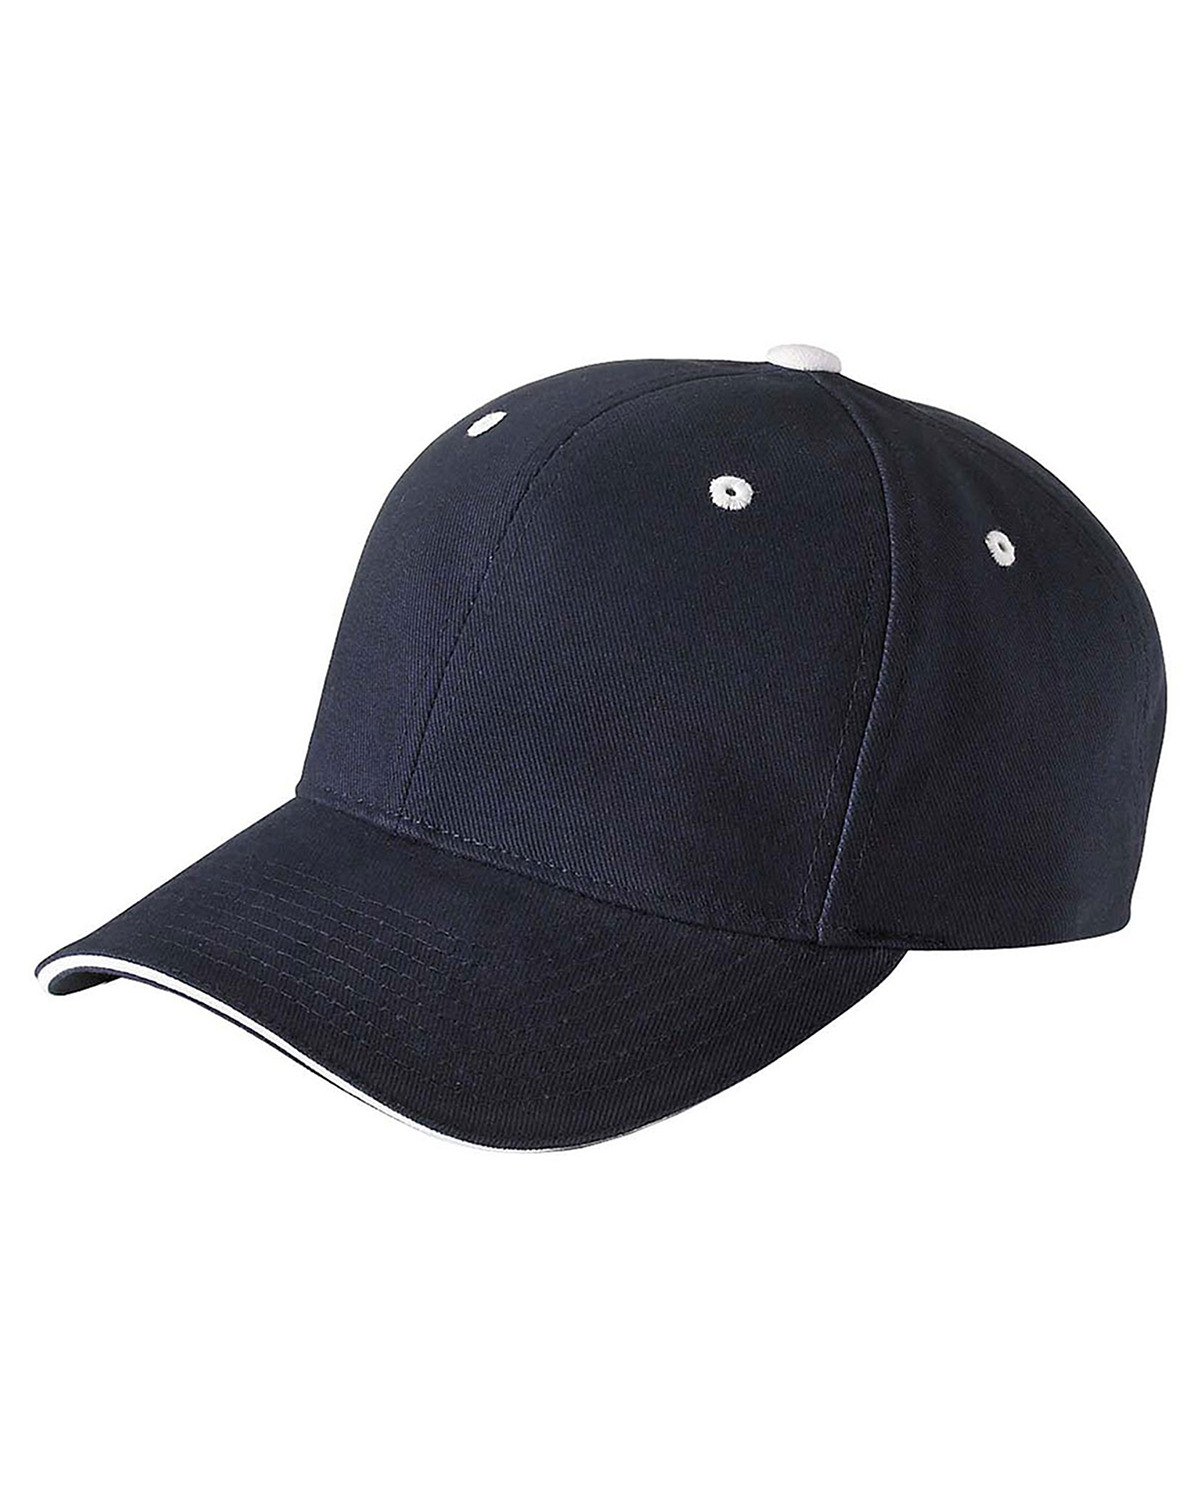 Yupoong 6262S Unisex Brushed Cotton Twill 6Panel Mid-Profile Sandwich Cap at GotApparel